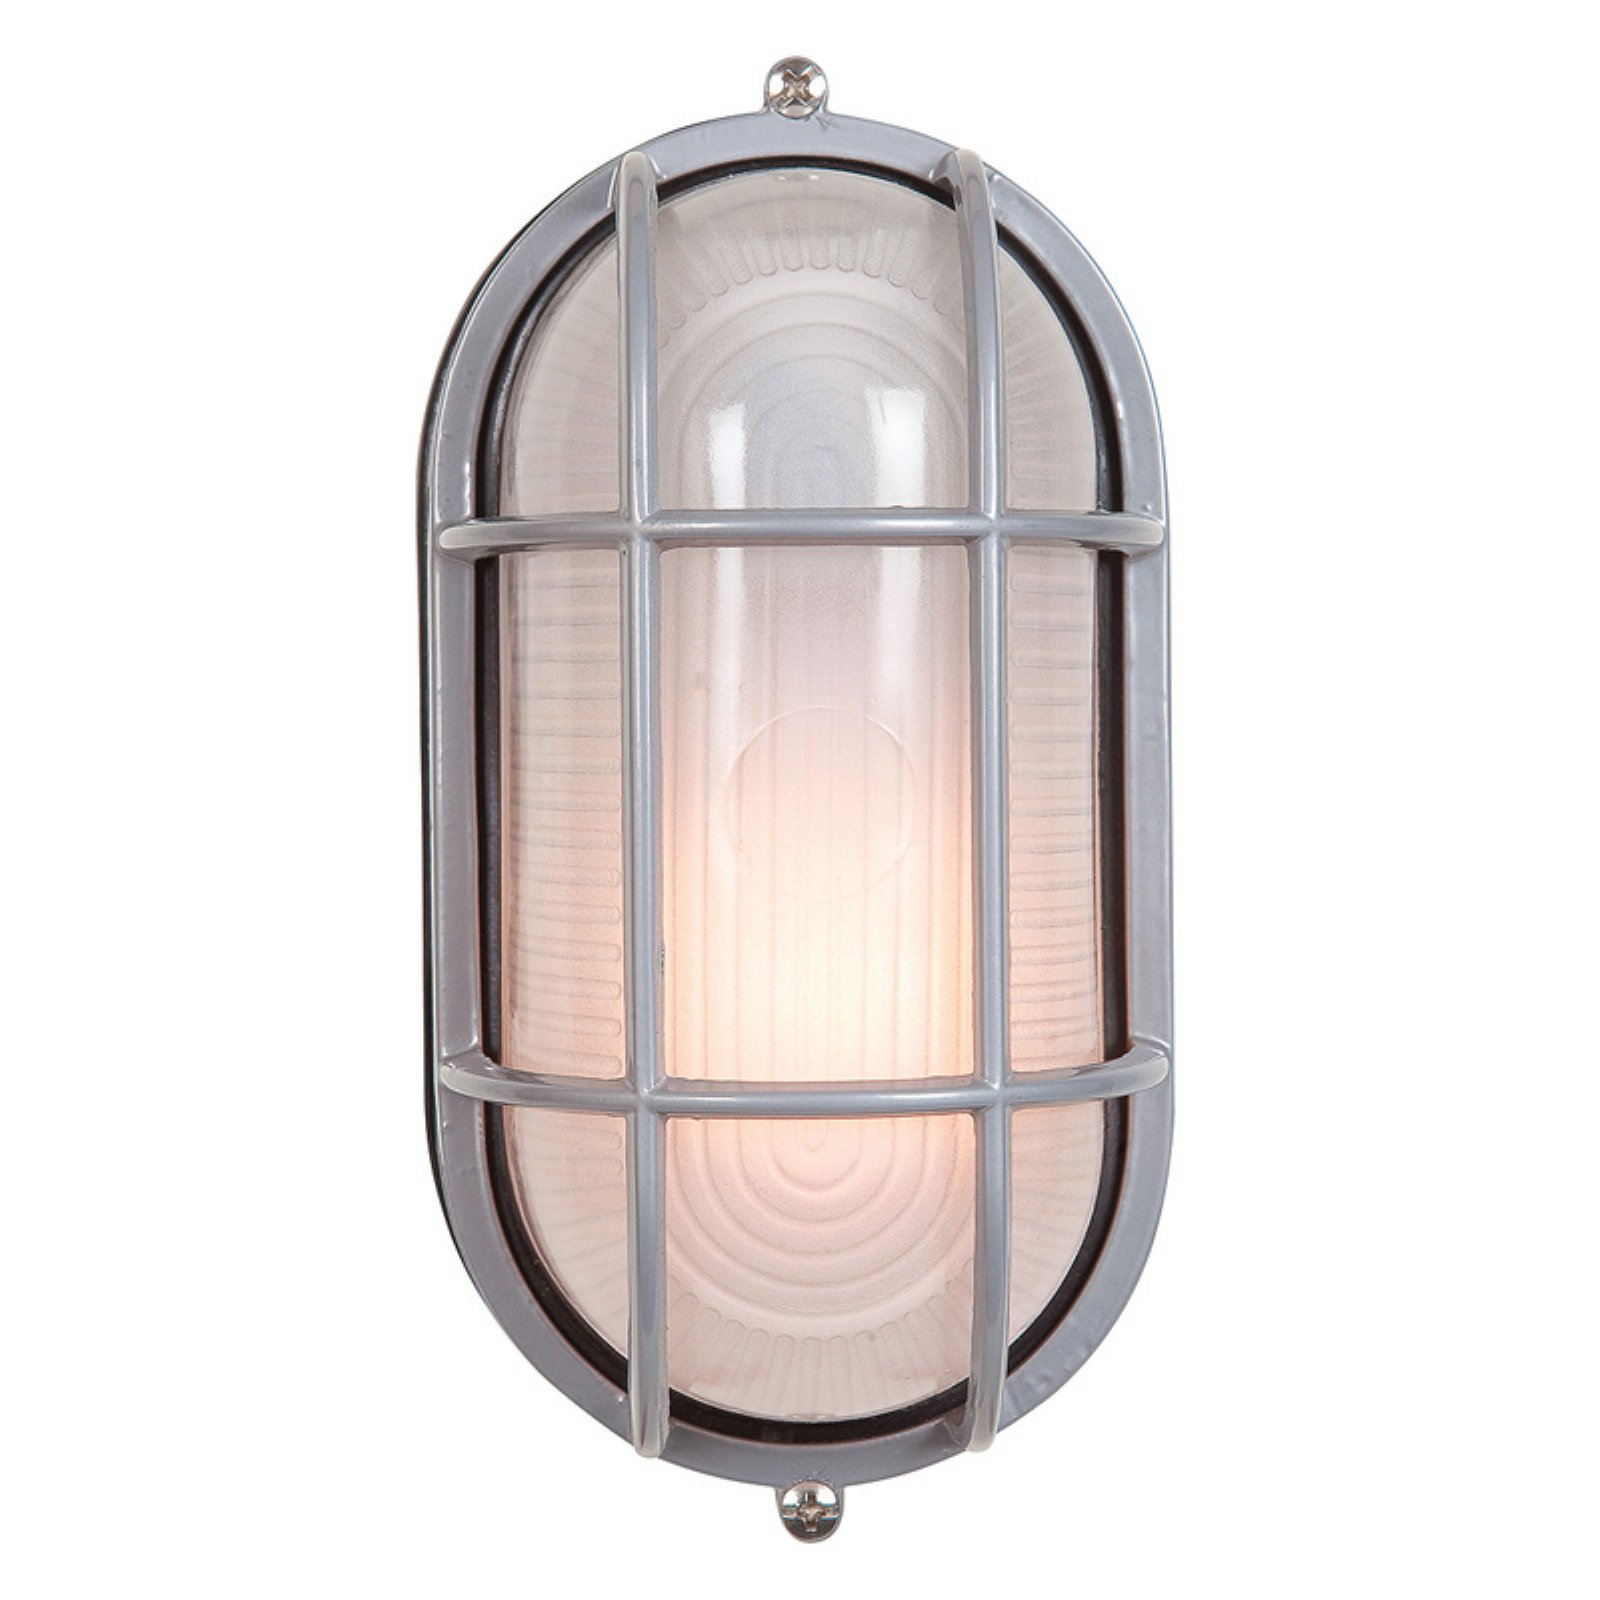 Access Lighting Nauticus Wall Light with Grill - 4.25H in.